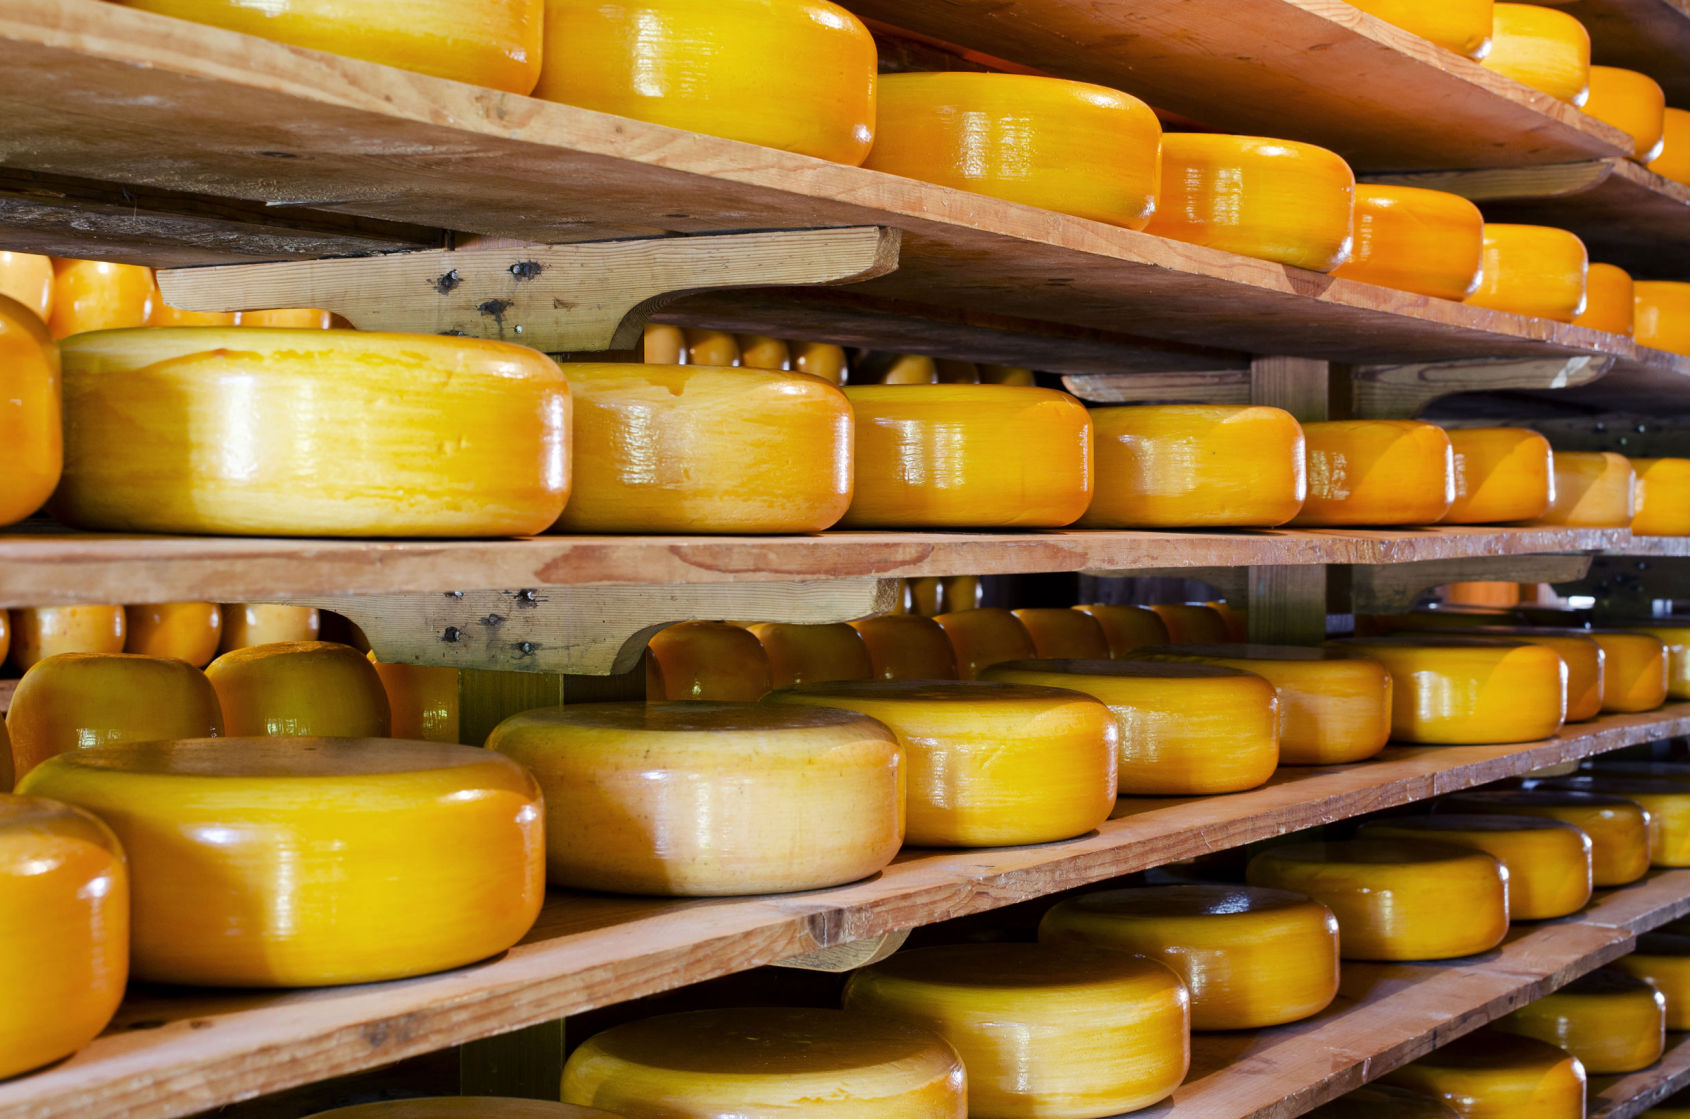 Racks of round cheddar cheese